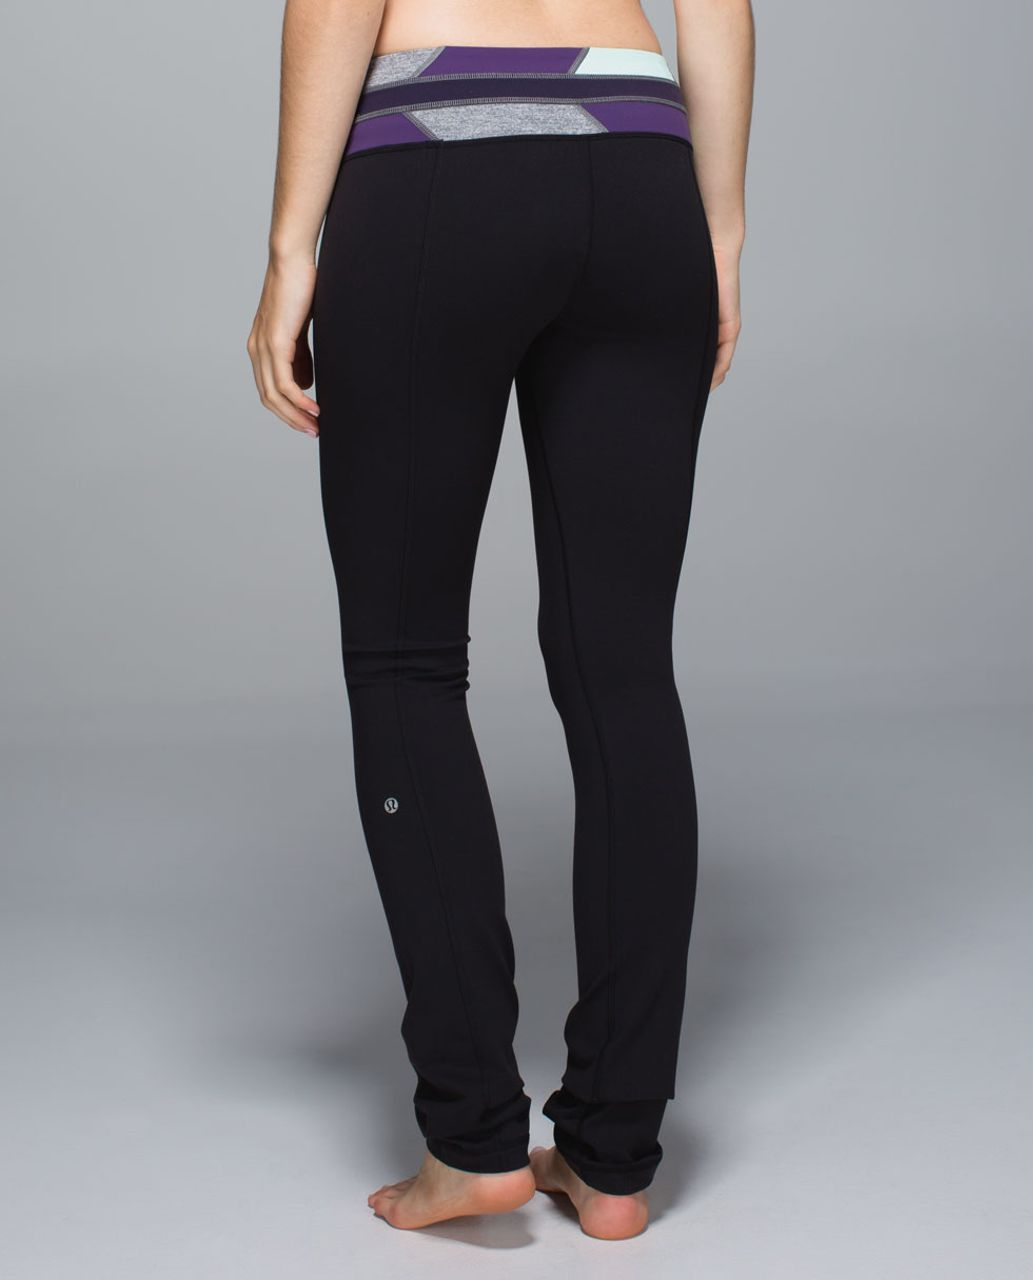 Lululemon Skinny Groove Pant *Full-On Luon - Black / Fa14 Quilt 13